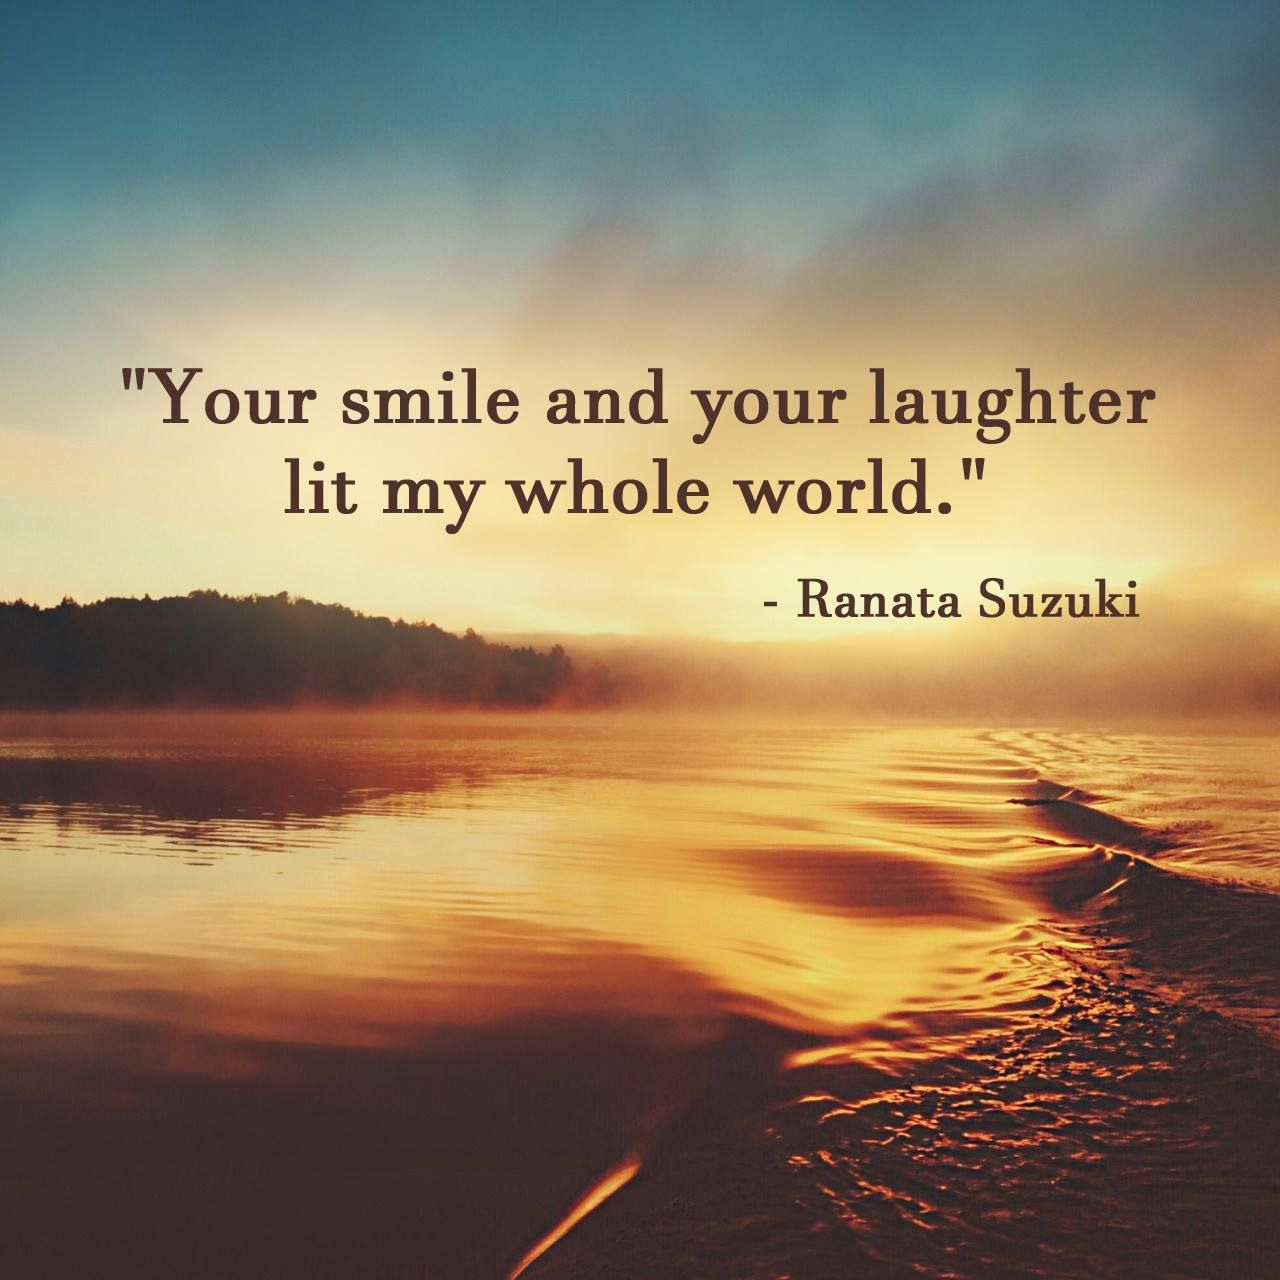 Your Smile And Your Laughter Lit My Whole World Ranata Suzuki Quote From Tumblr Blogger Ranata Suzuki Missing You Smile Quotes Love Quotes Your Smile